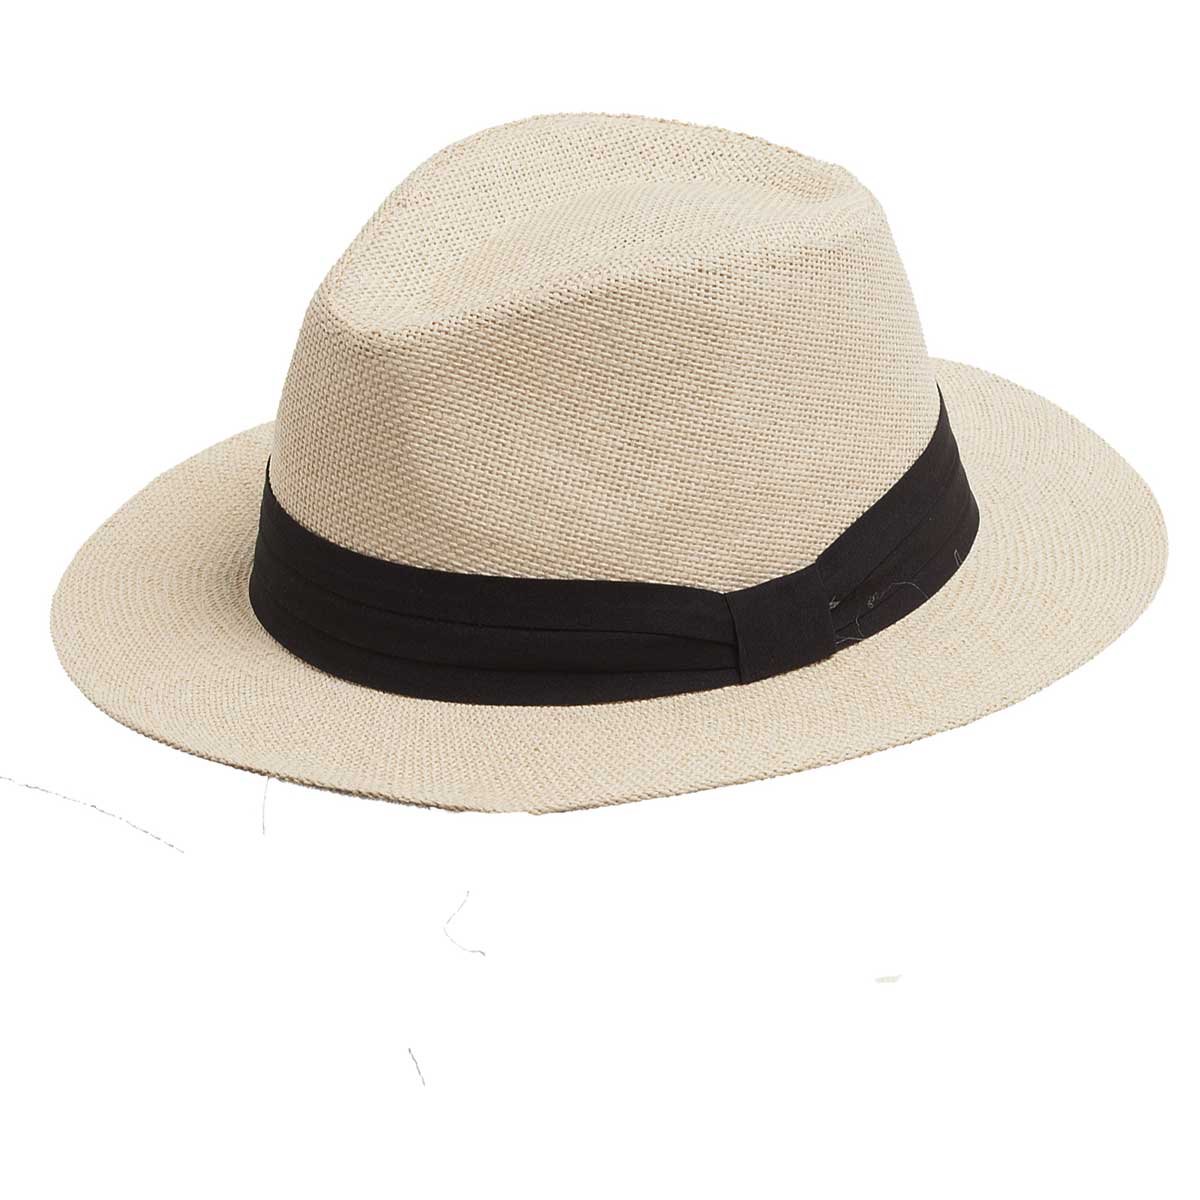 Tan Panama Hat *70sp